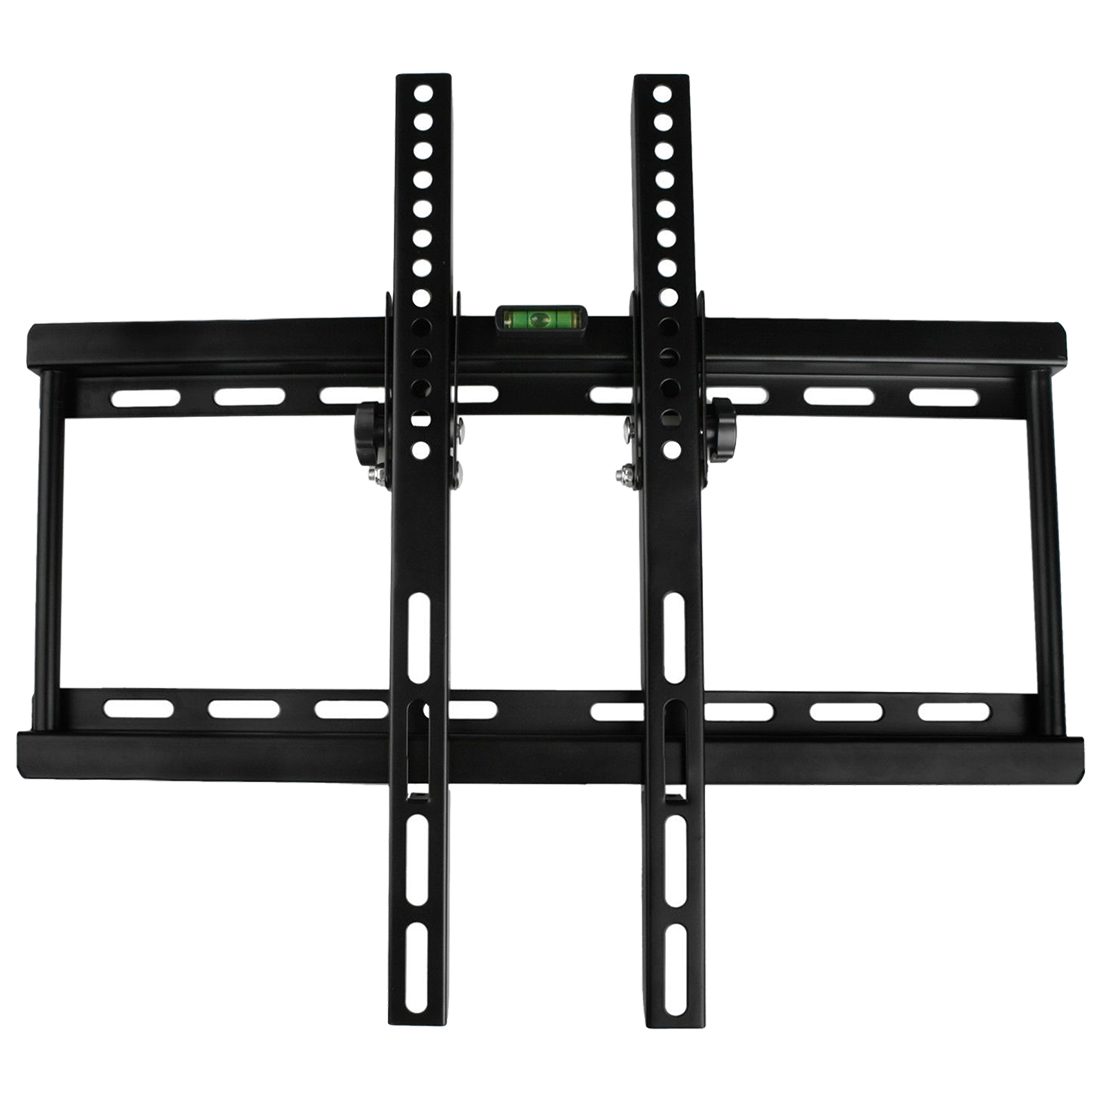 Flat Slim Tv Wall Mount Bracket 23 28 30 32 40 42 48 50 55 Inch Led Lcd Plasma Bathroom Shelves Bathroom Fixtures